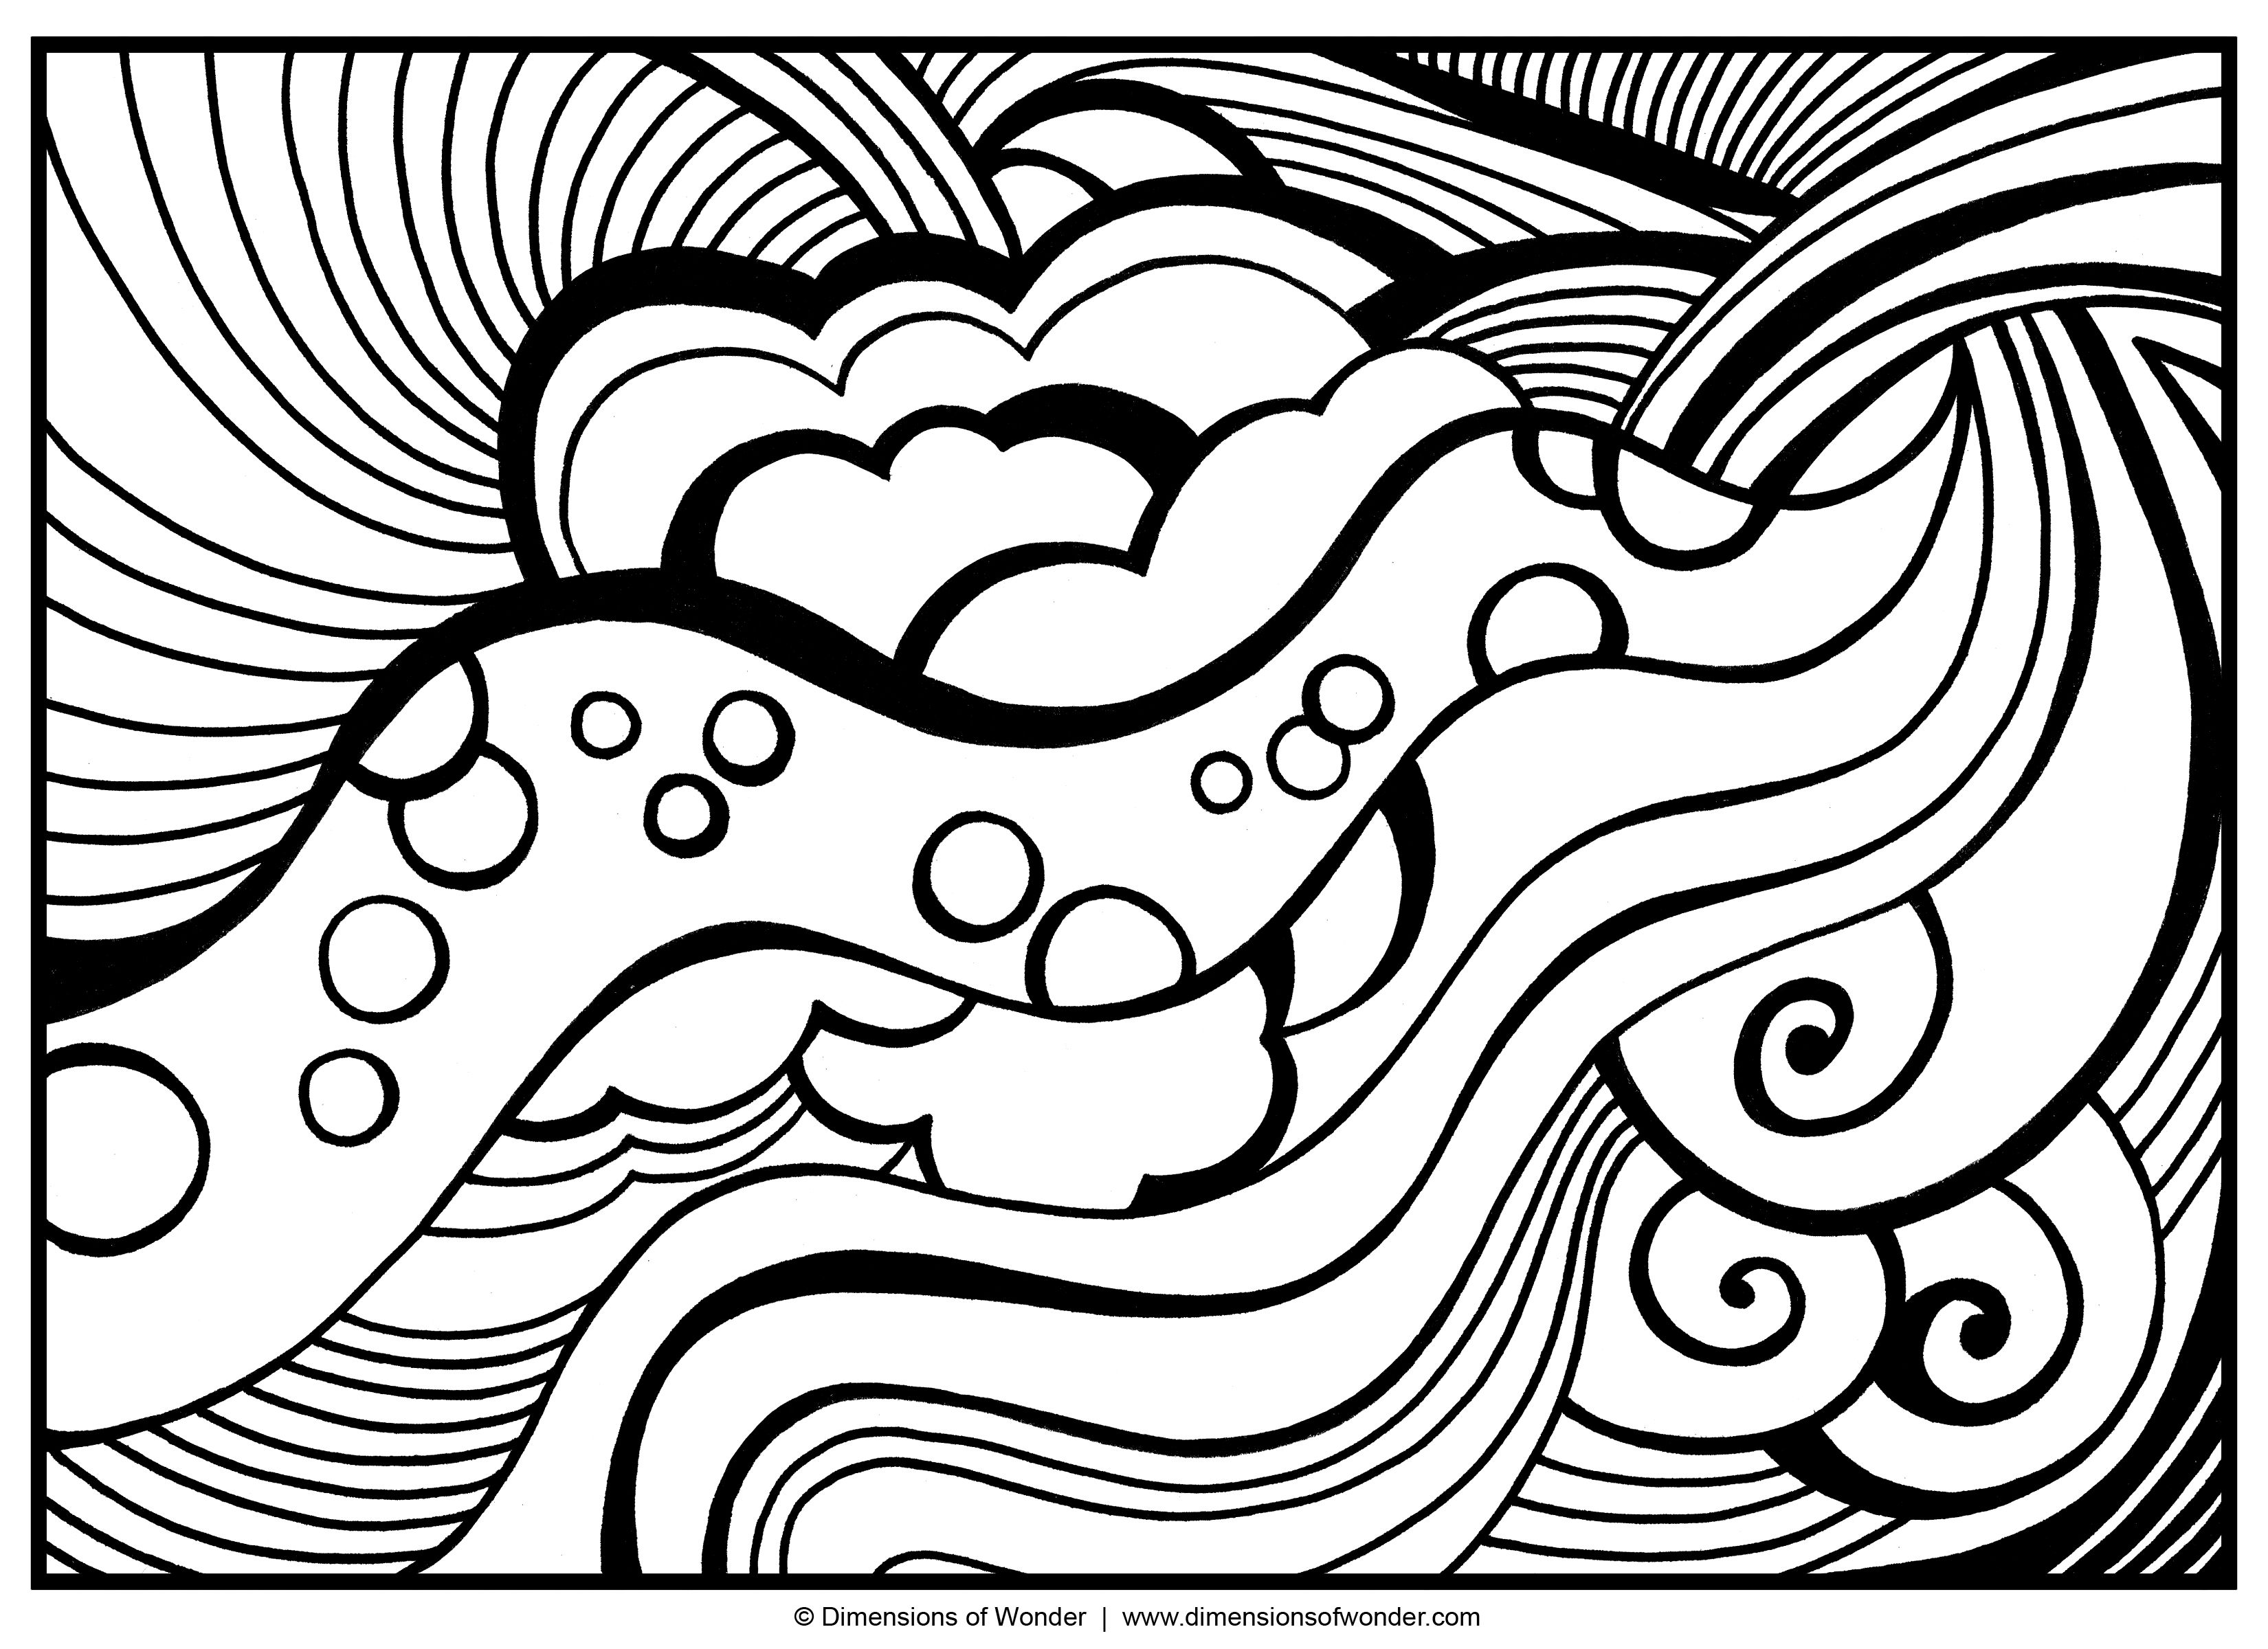 Abstract Coloring Pages Free Large Images Recipes Pinterest Coloring Sheets